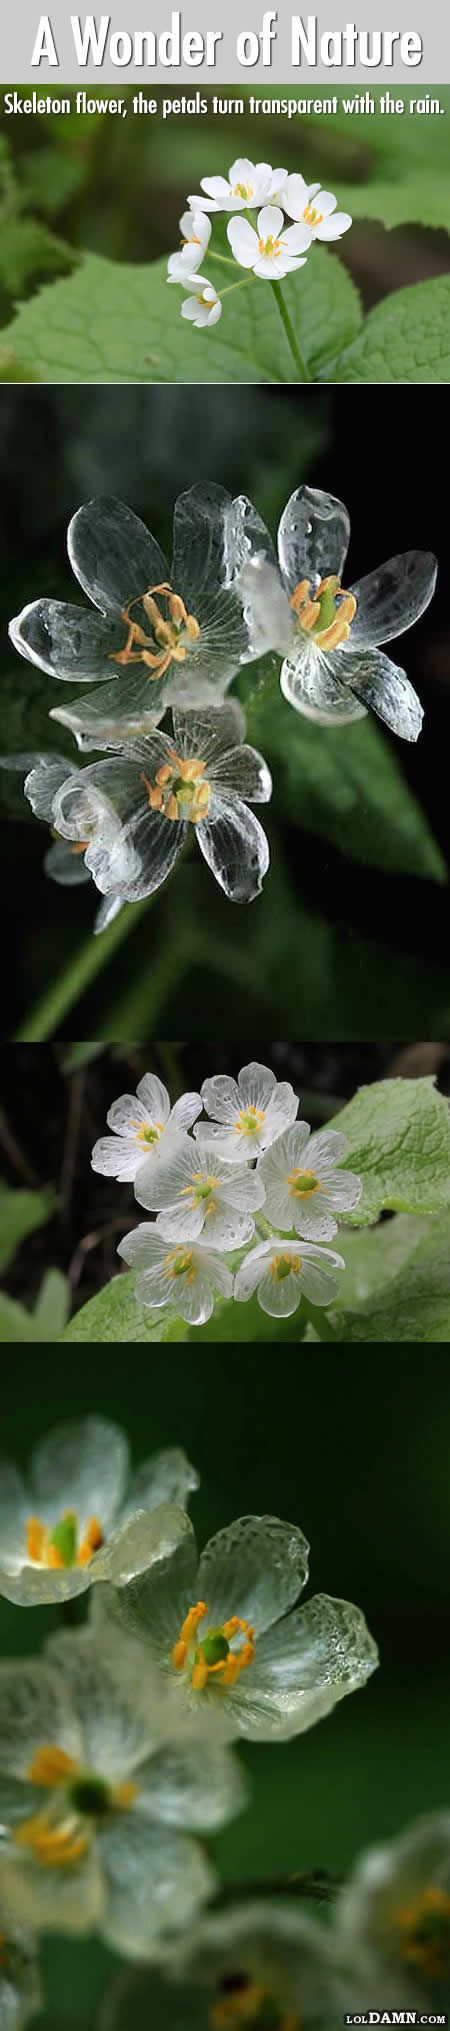 "csontváz virág ""Diphylleia grayi"" (Skeleton flower) is the only flower grows in China and Japan.Their petals turn transparent with the rain. - (""Diphylleia grayi"" - I suoi fiori diventano trasparenti quando piove!)"